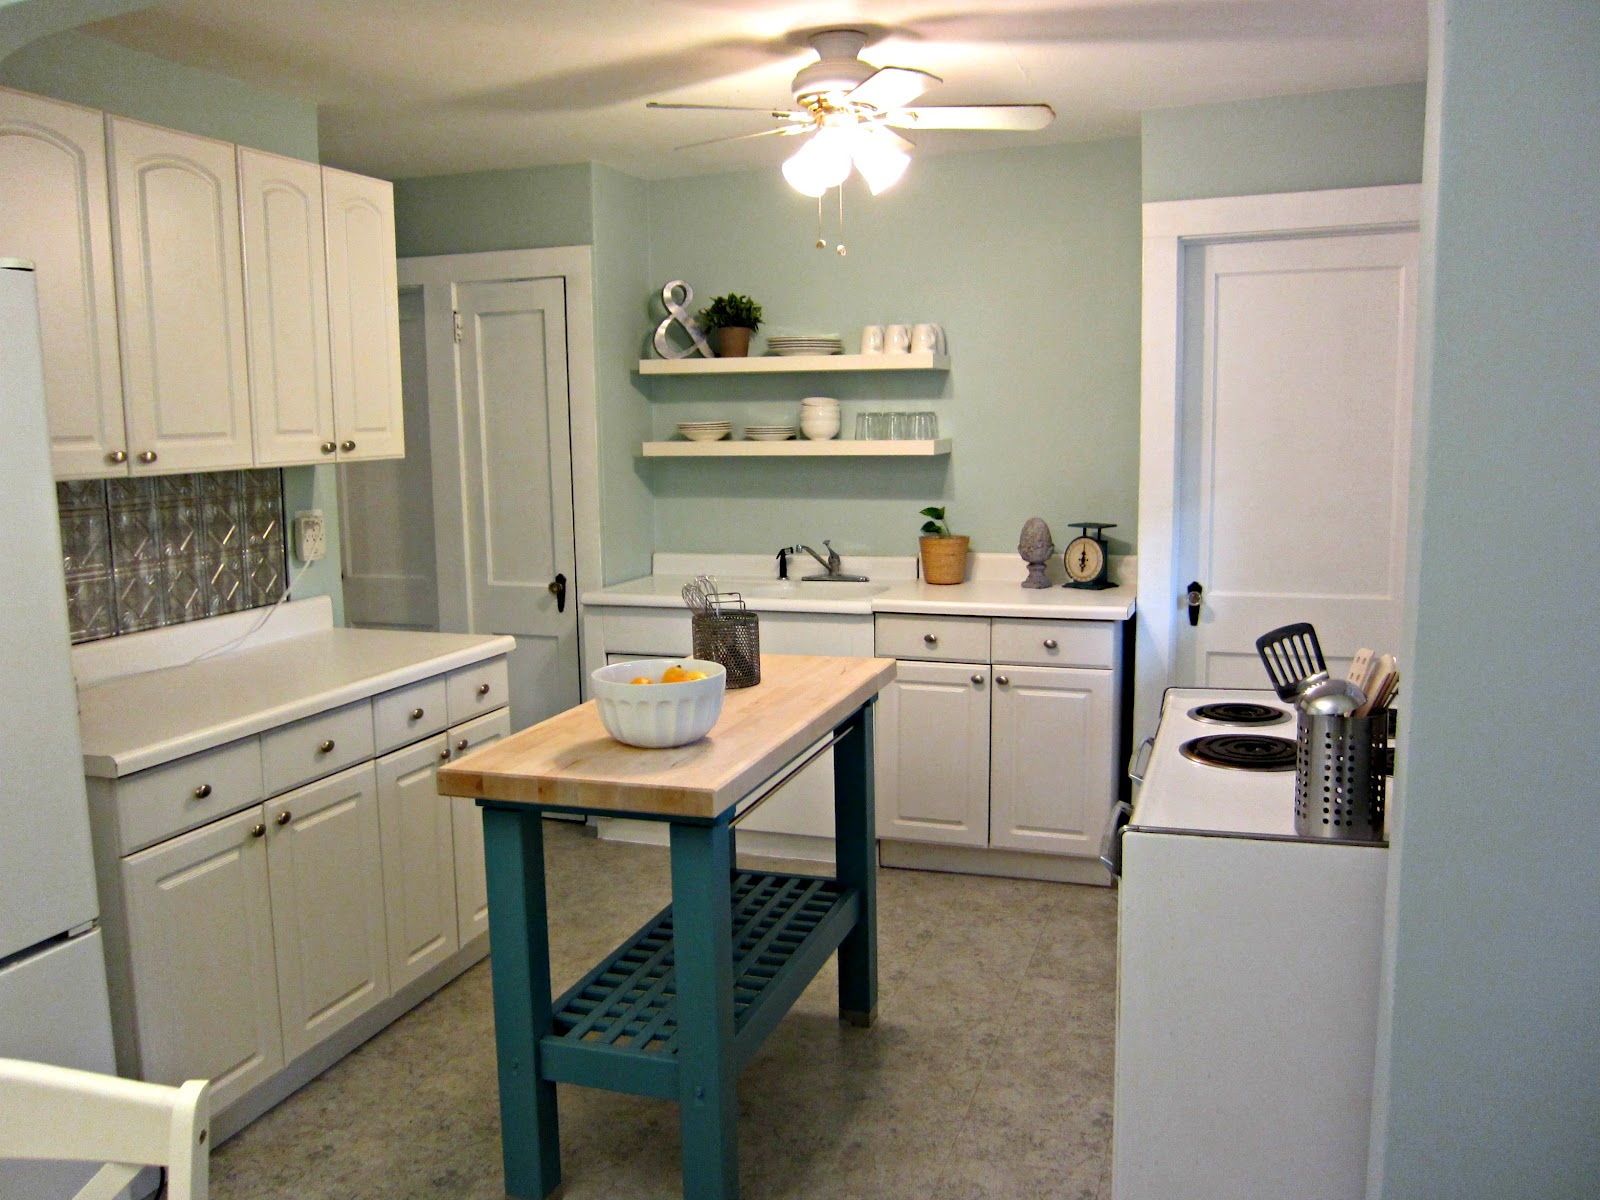 a place 2 call home: kitchen makeover